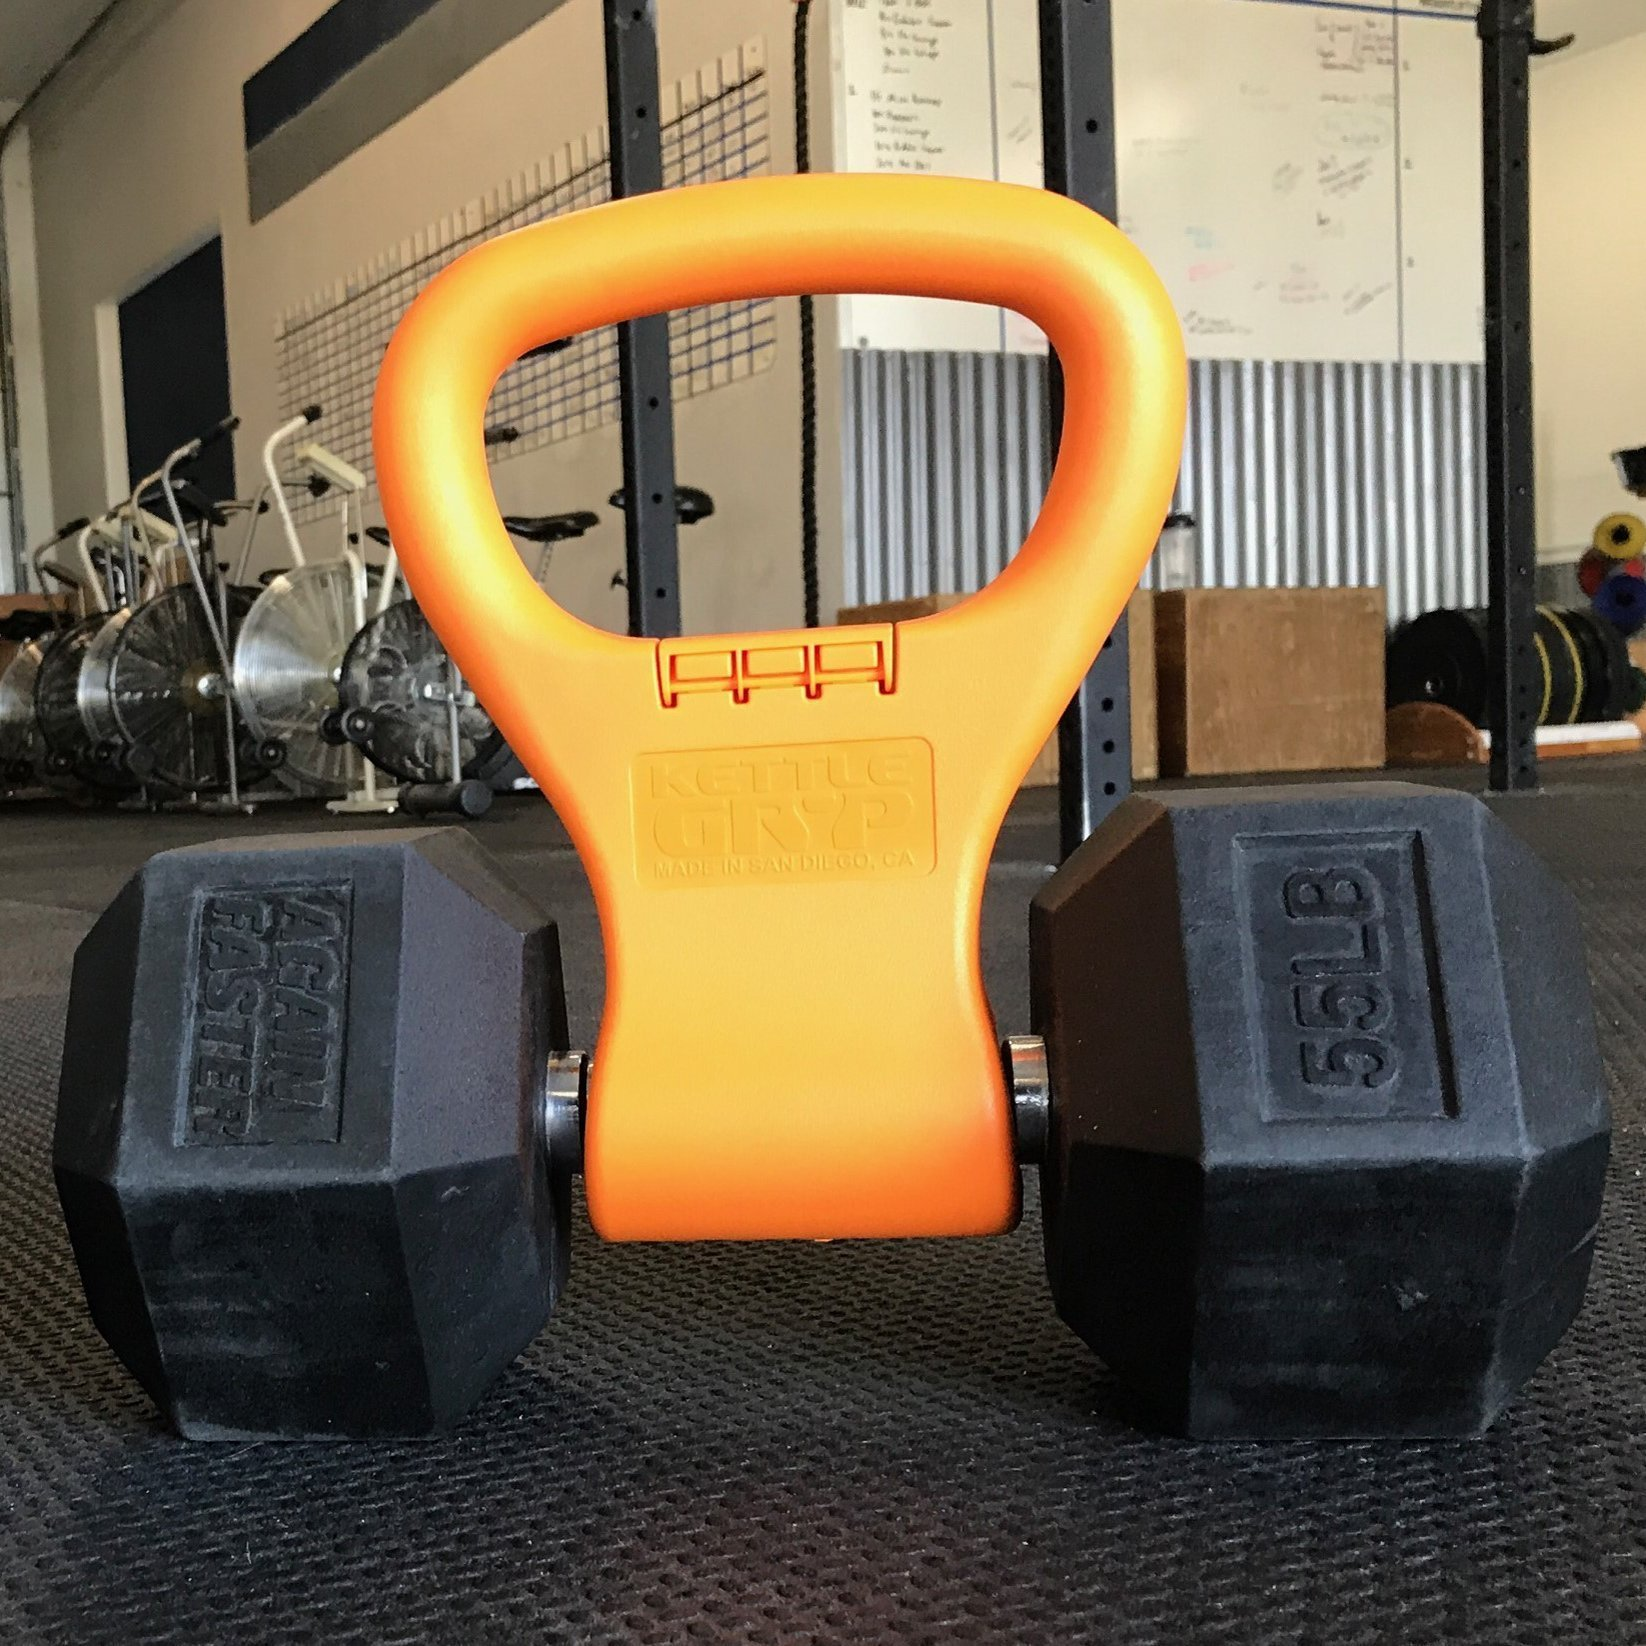 Kettle Gryp Kettlebell Adjustable Portable Weight Grip Travel Workout Equipment Gear for Gym Bag, Crossfit WOD, Weightlifting, Bodybuilding, Lose Weight | Clamps to Dumbells | Made in U.S.A. by Kettle Gryp (Image #3)